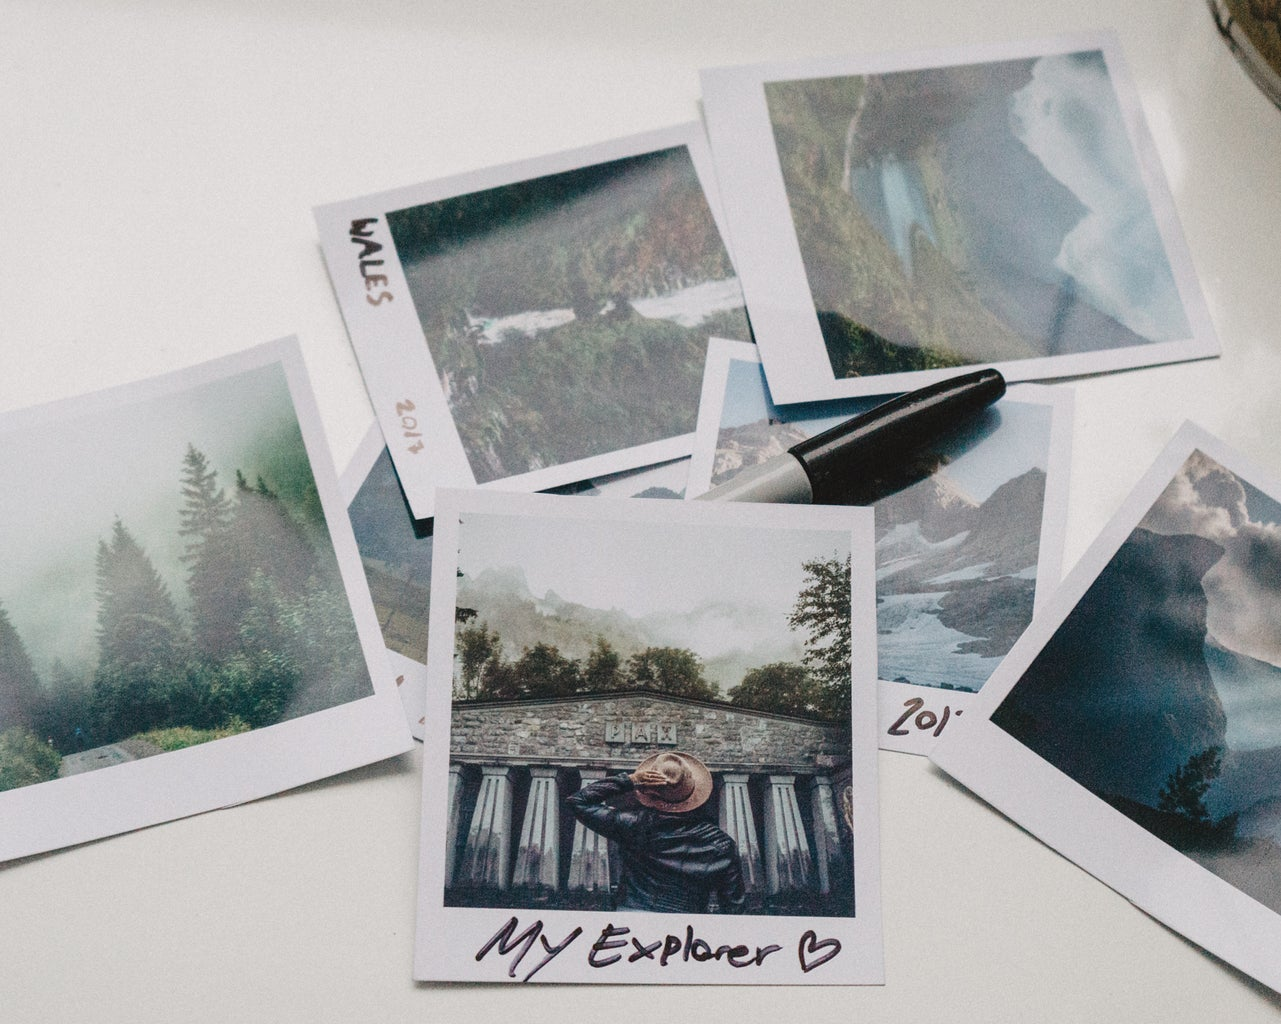 Make Your Own POLAROID Pictures in Under 10minutes!!! All Without a Polaroid Camera!!! Watch This Great Video!!!